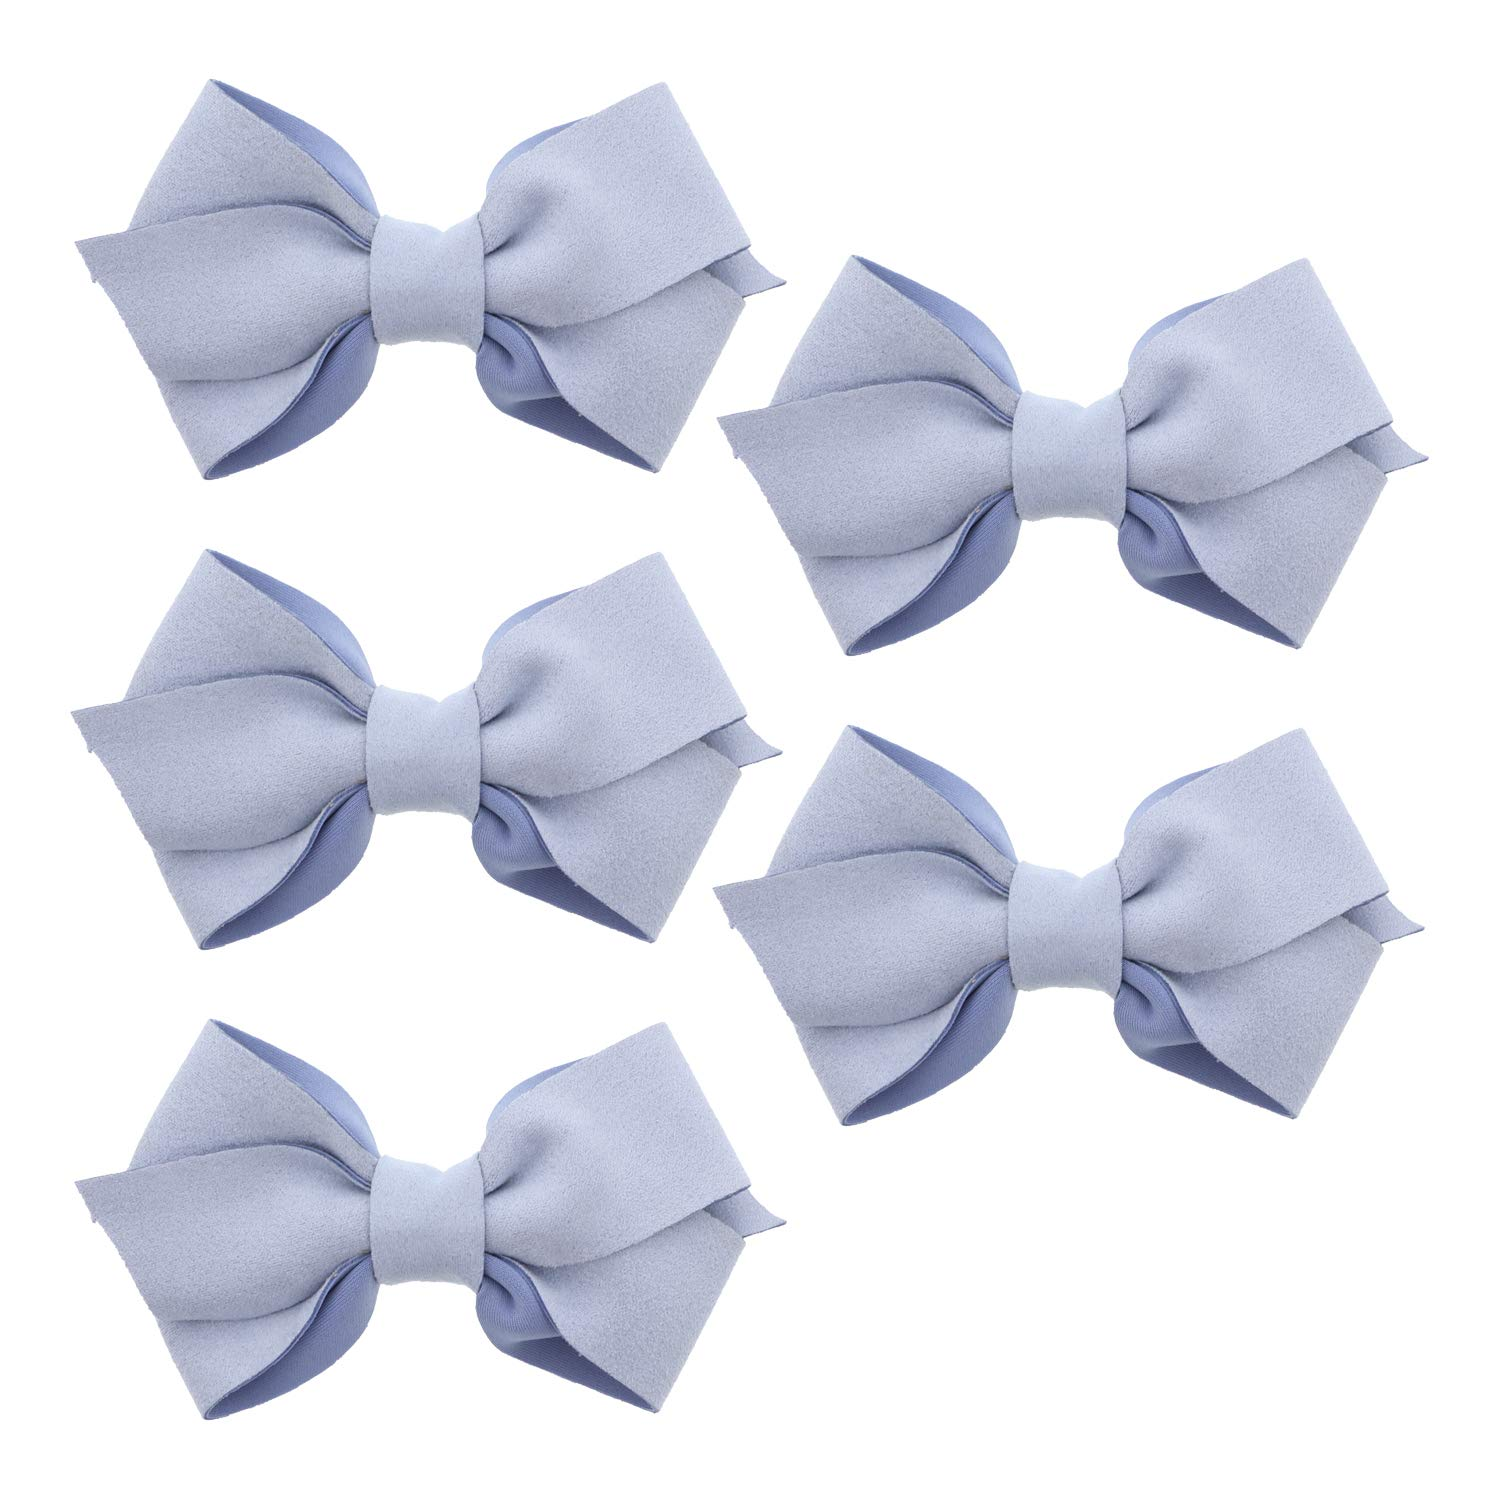 Ocean Blue Small Suede Scuba Hair Bow For Girls - Set of 5